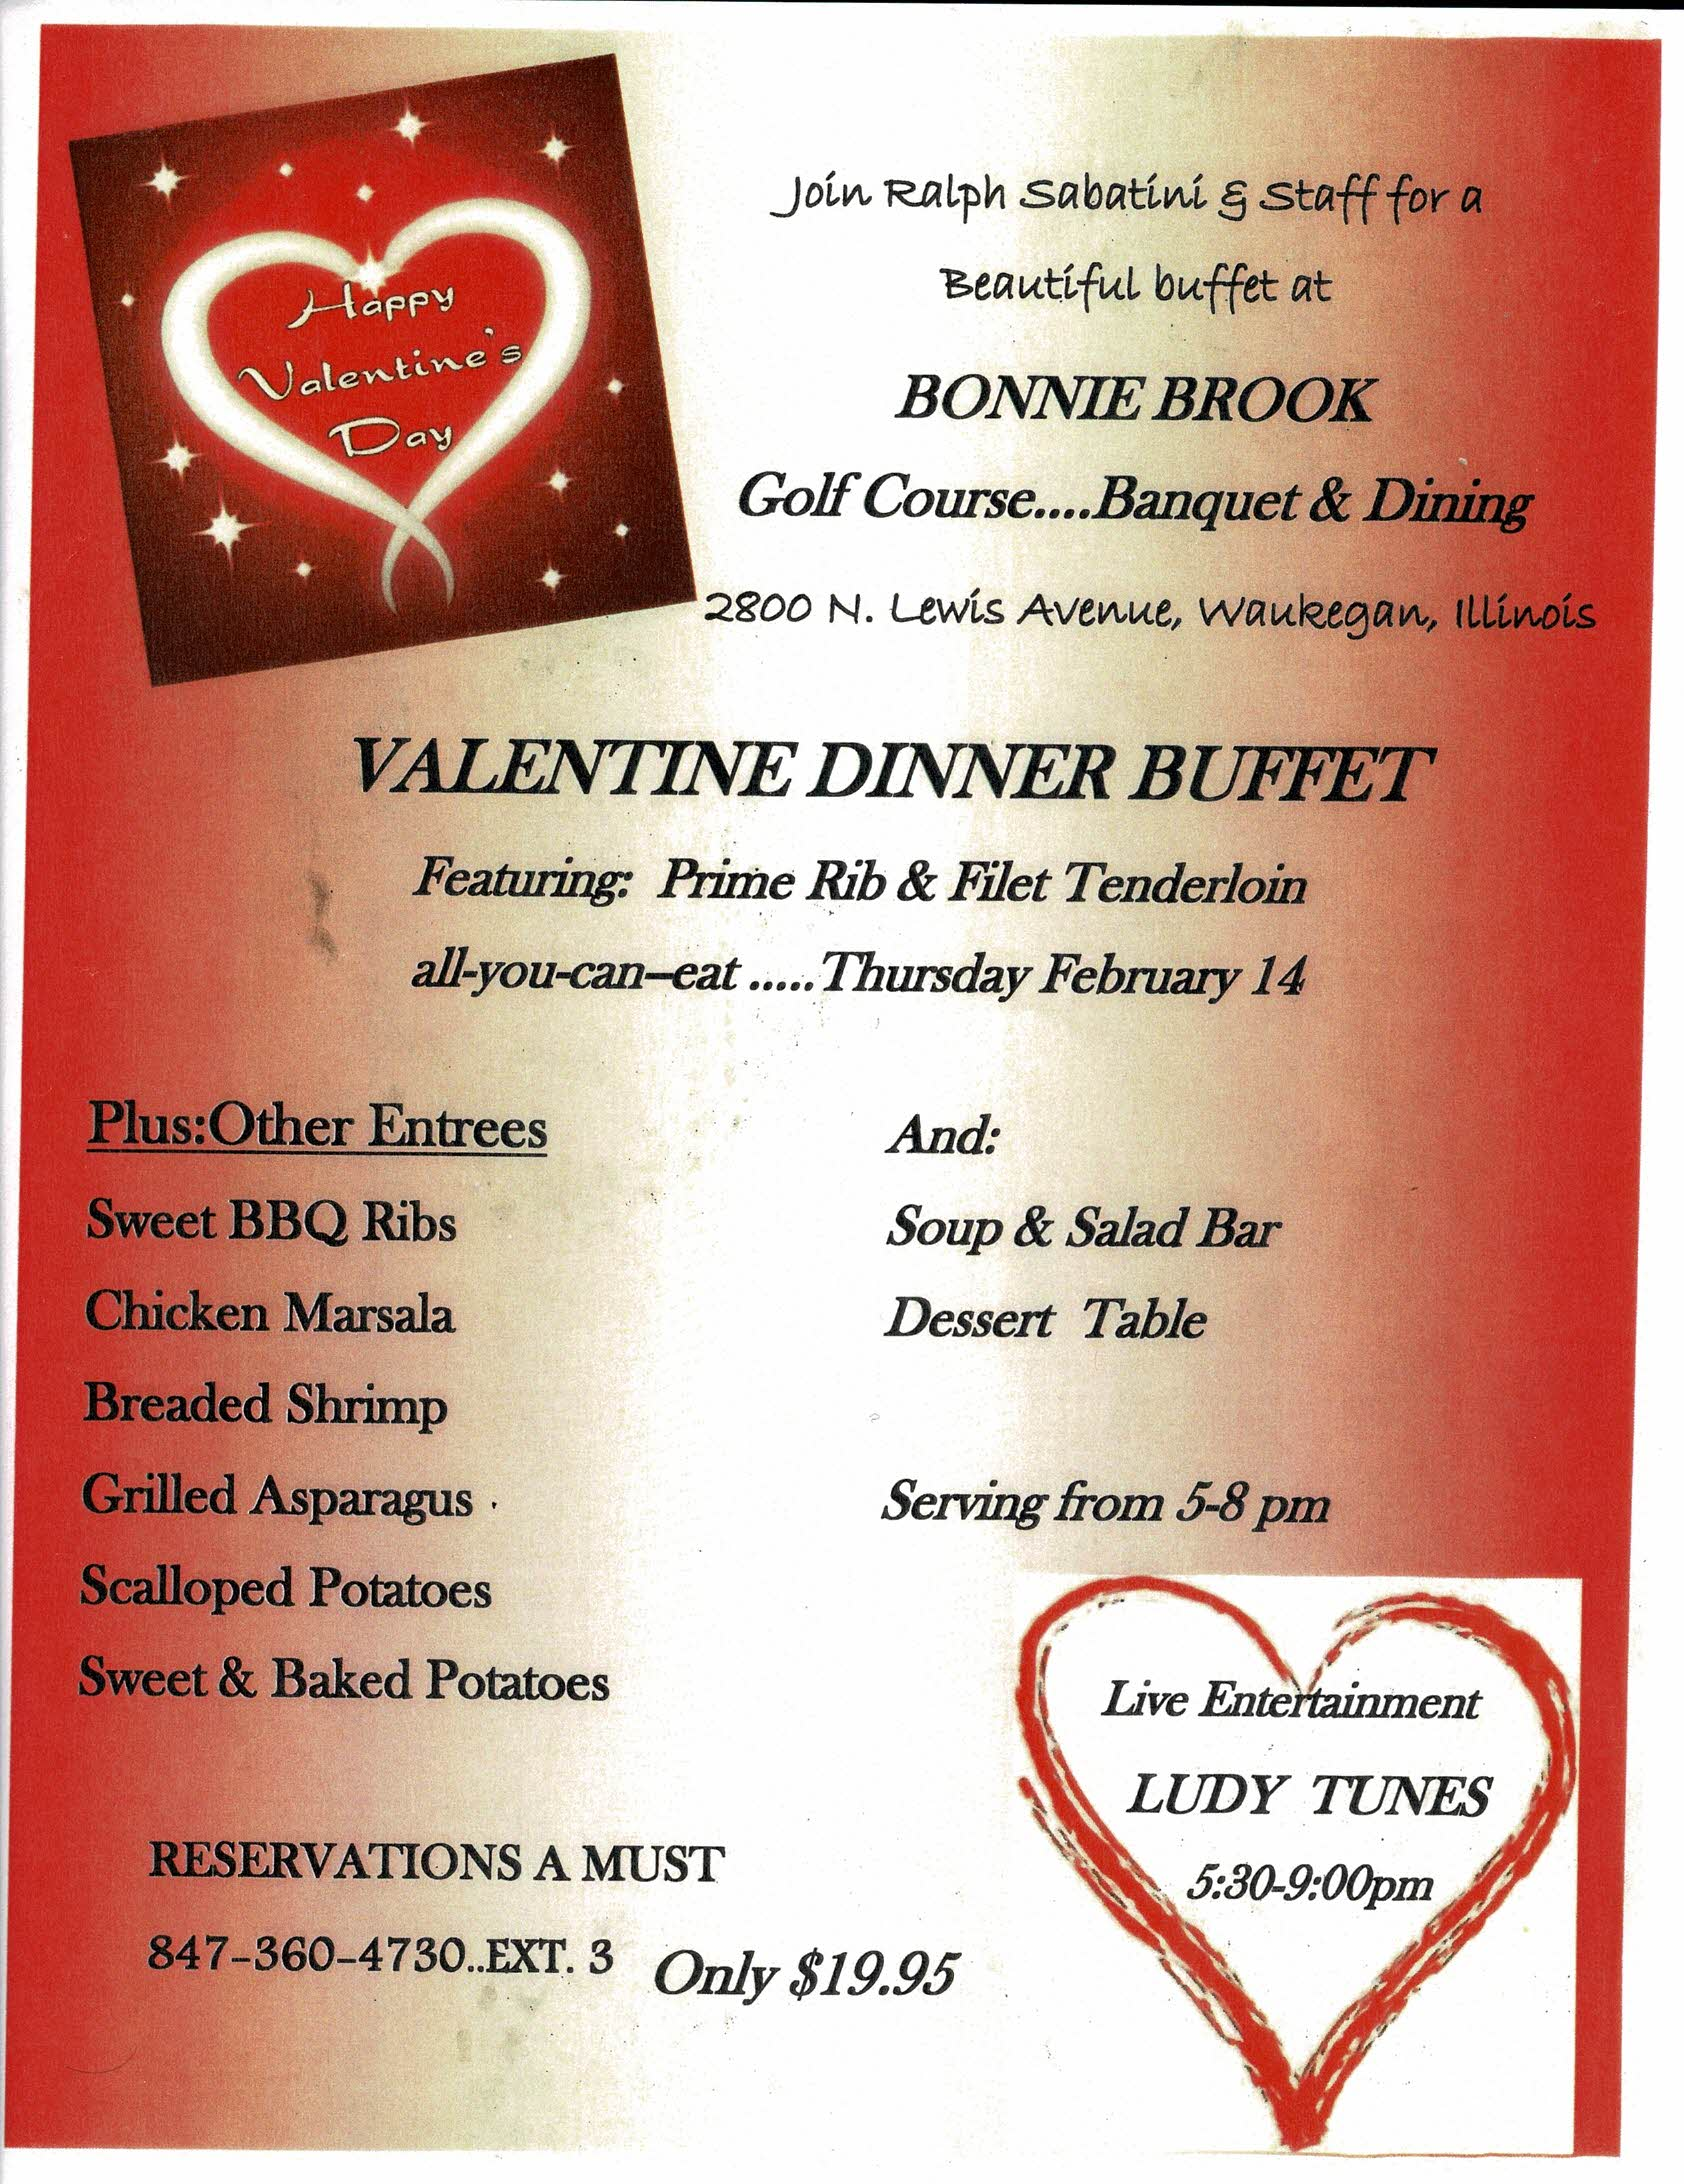 Valentine Dinner Buffet